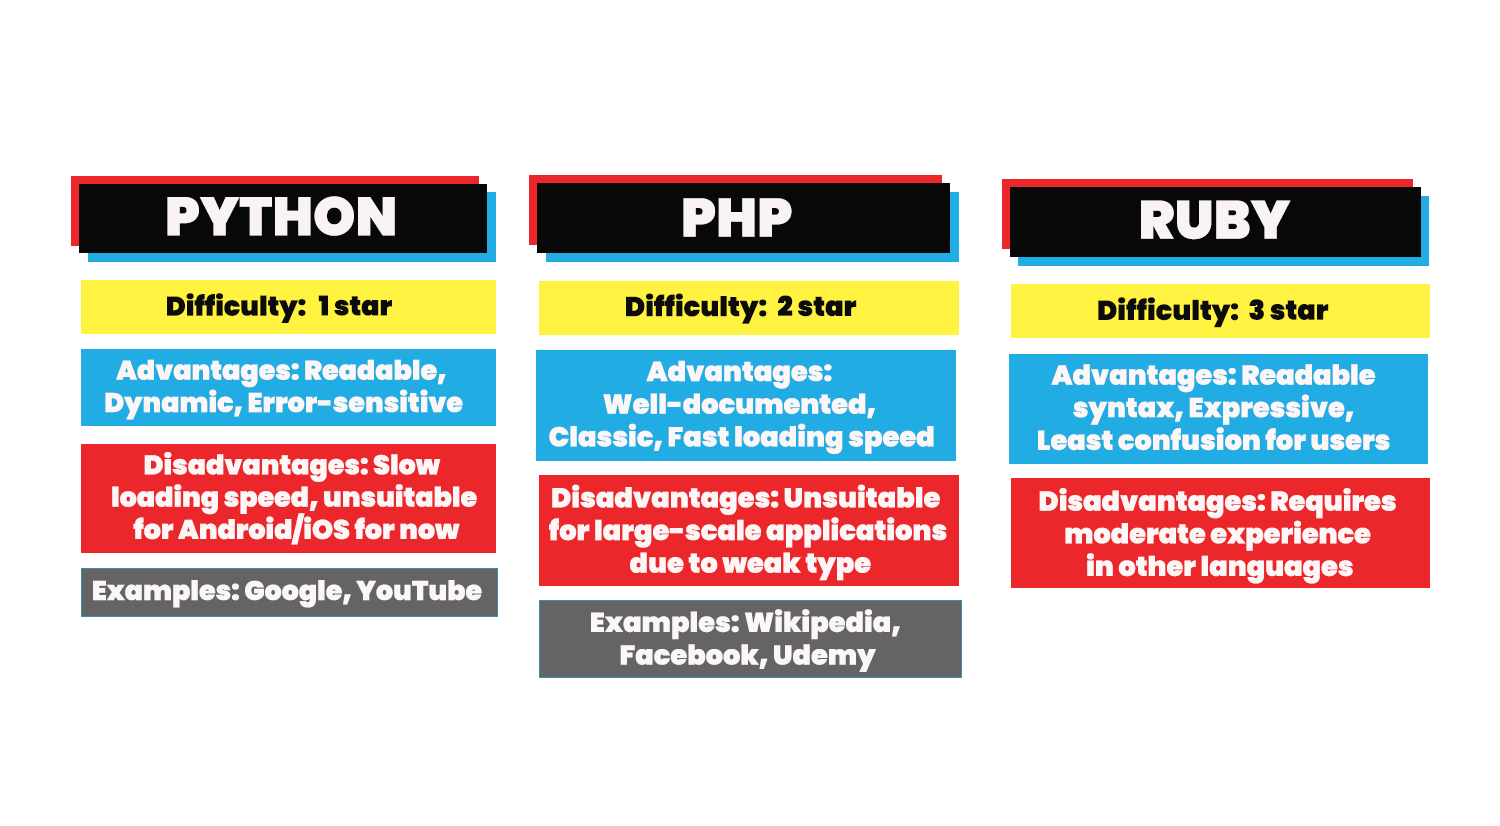 Python, PHP, and Ruby: Deciding which language to learn